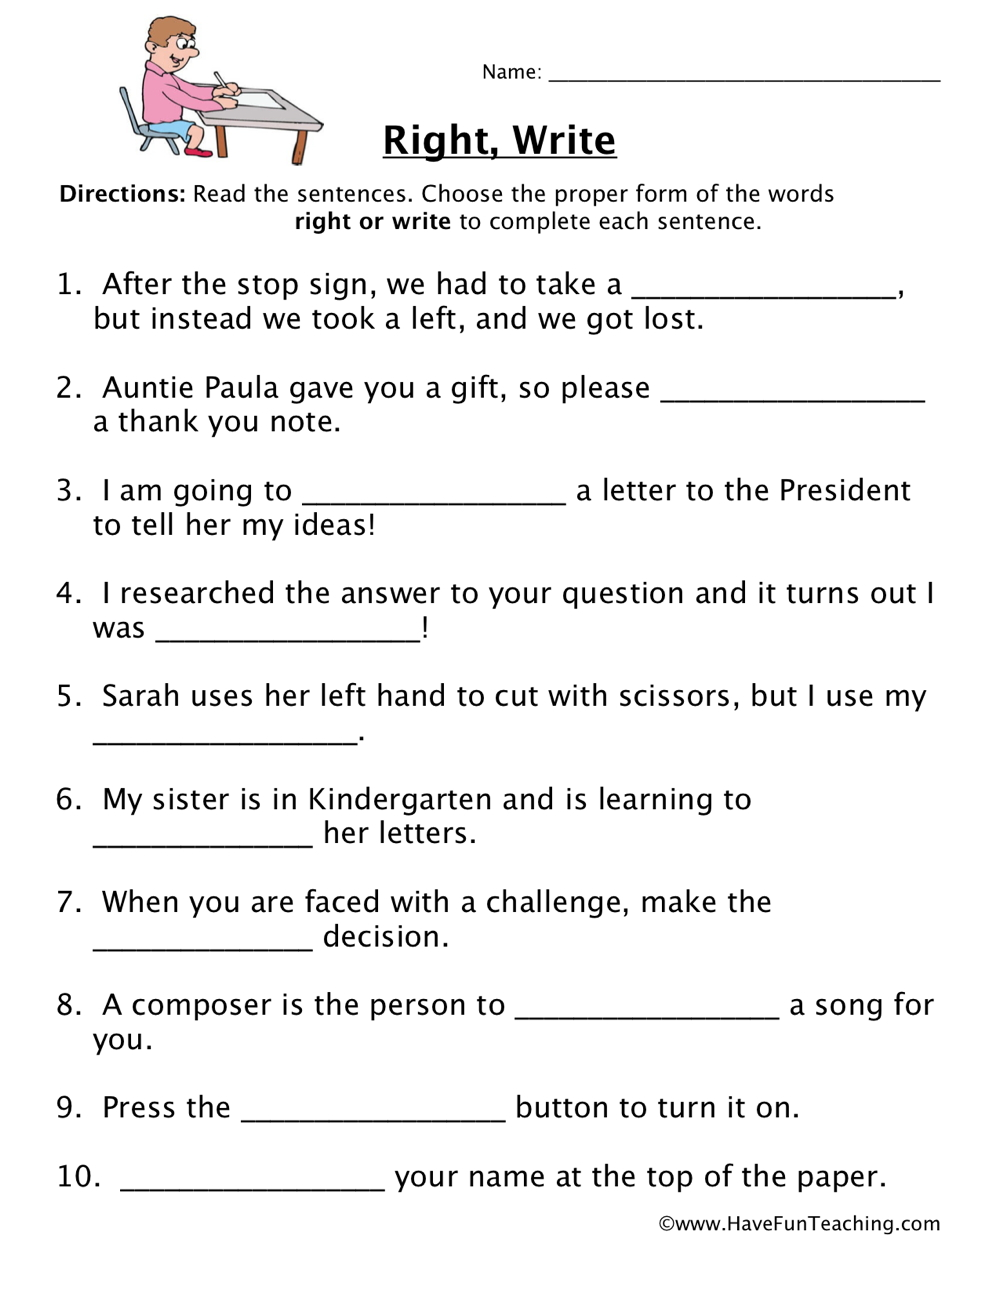 By Have Fun Teaching on May 7, 2013 in Homophones Worksheets